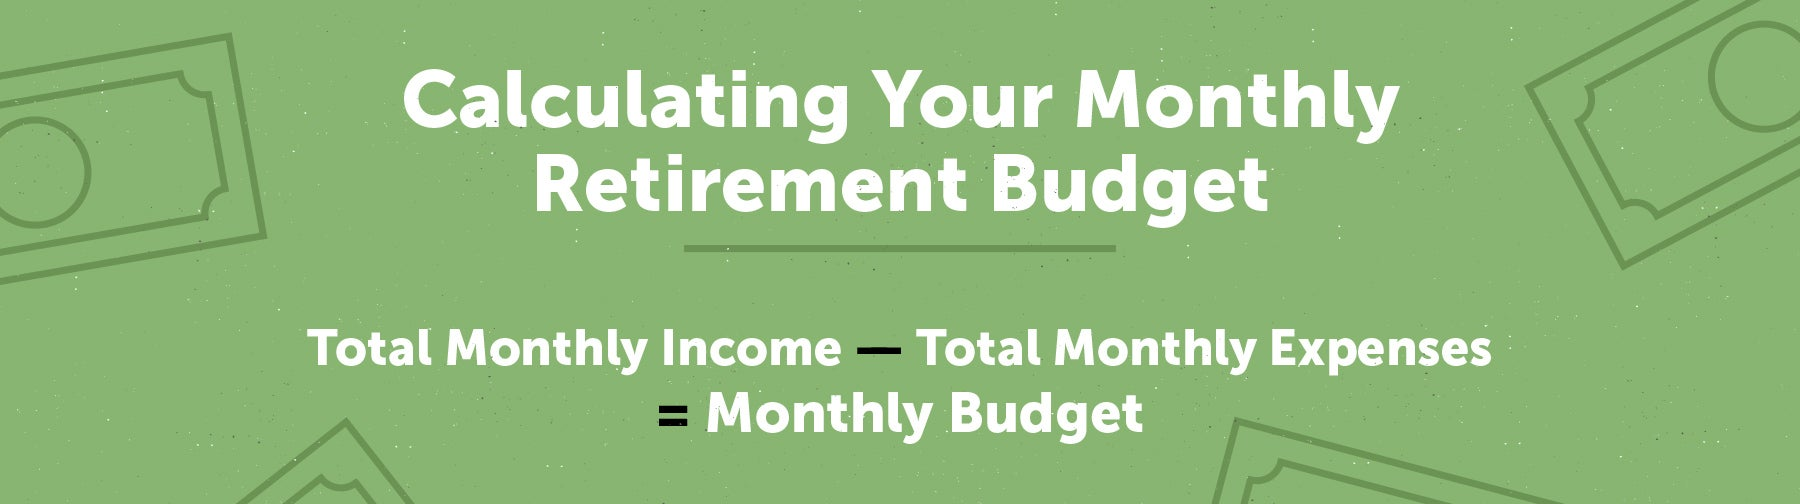 calculating your monthly retirement budget formula